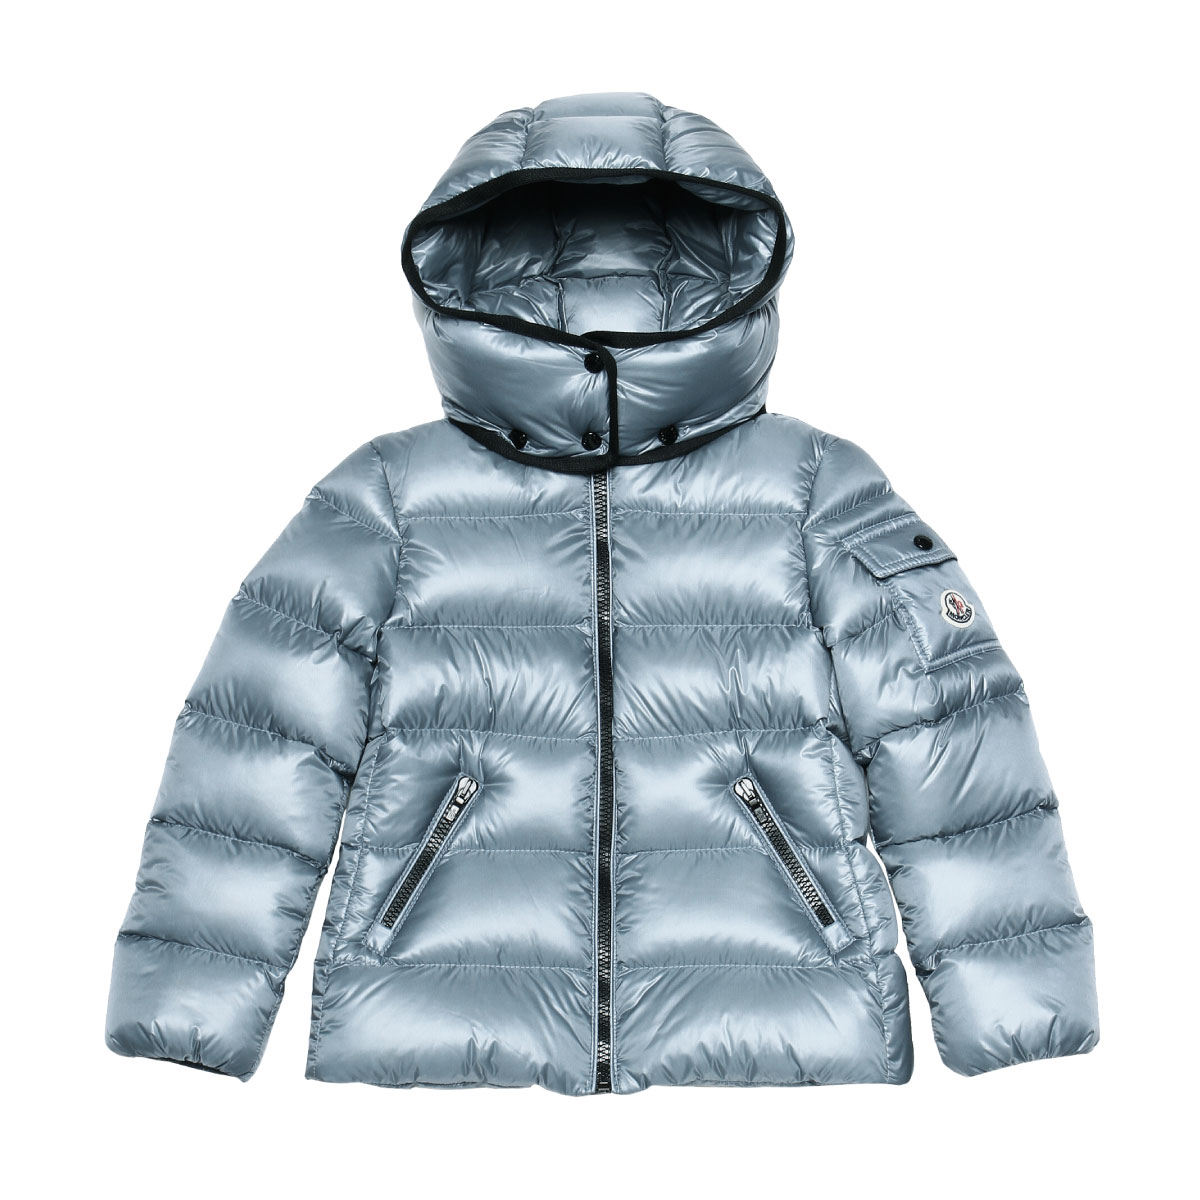 8e8f8590a65b Down jacket BERRE veil LIGHT BLUE light blue 4A - 10A with Monk rail MONCLER  outer kids girls BERRE 53052 71C food